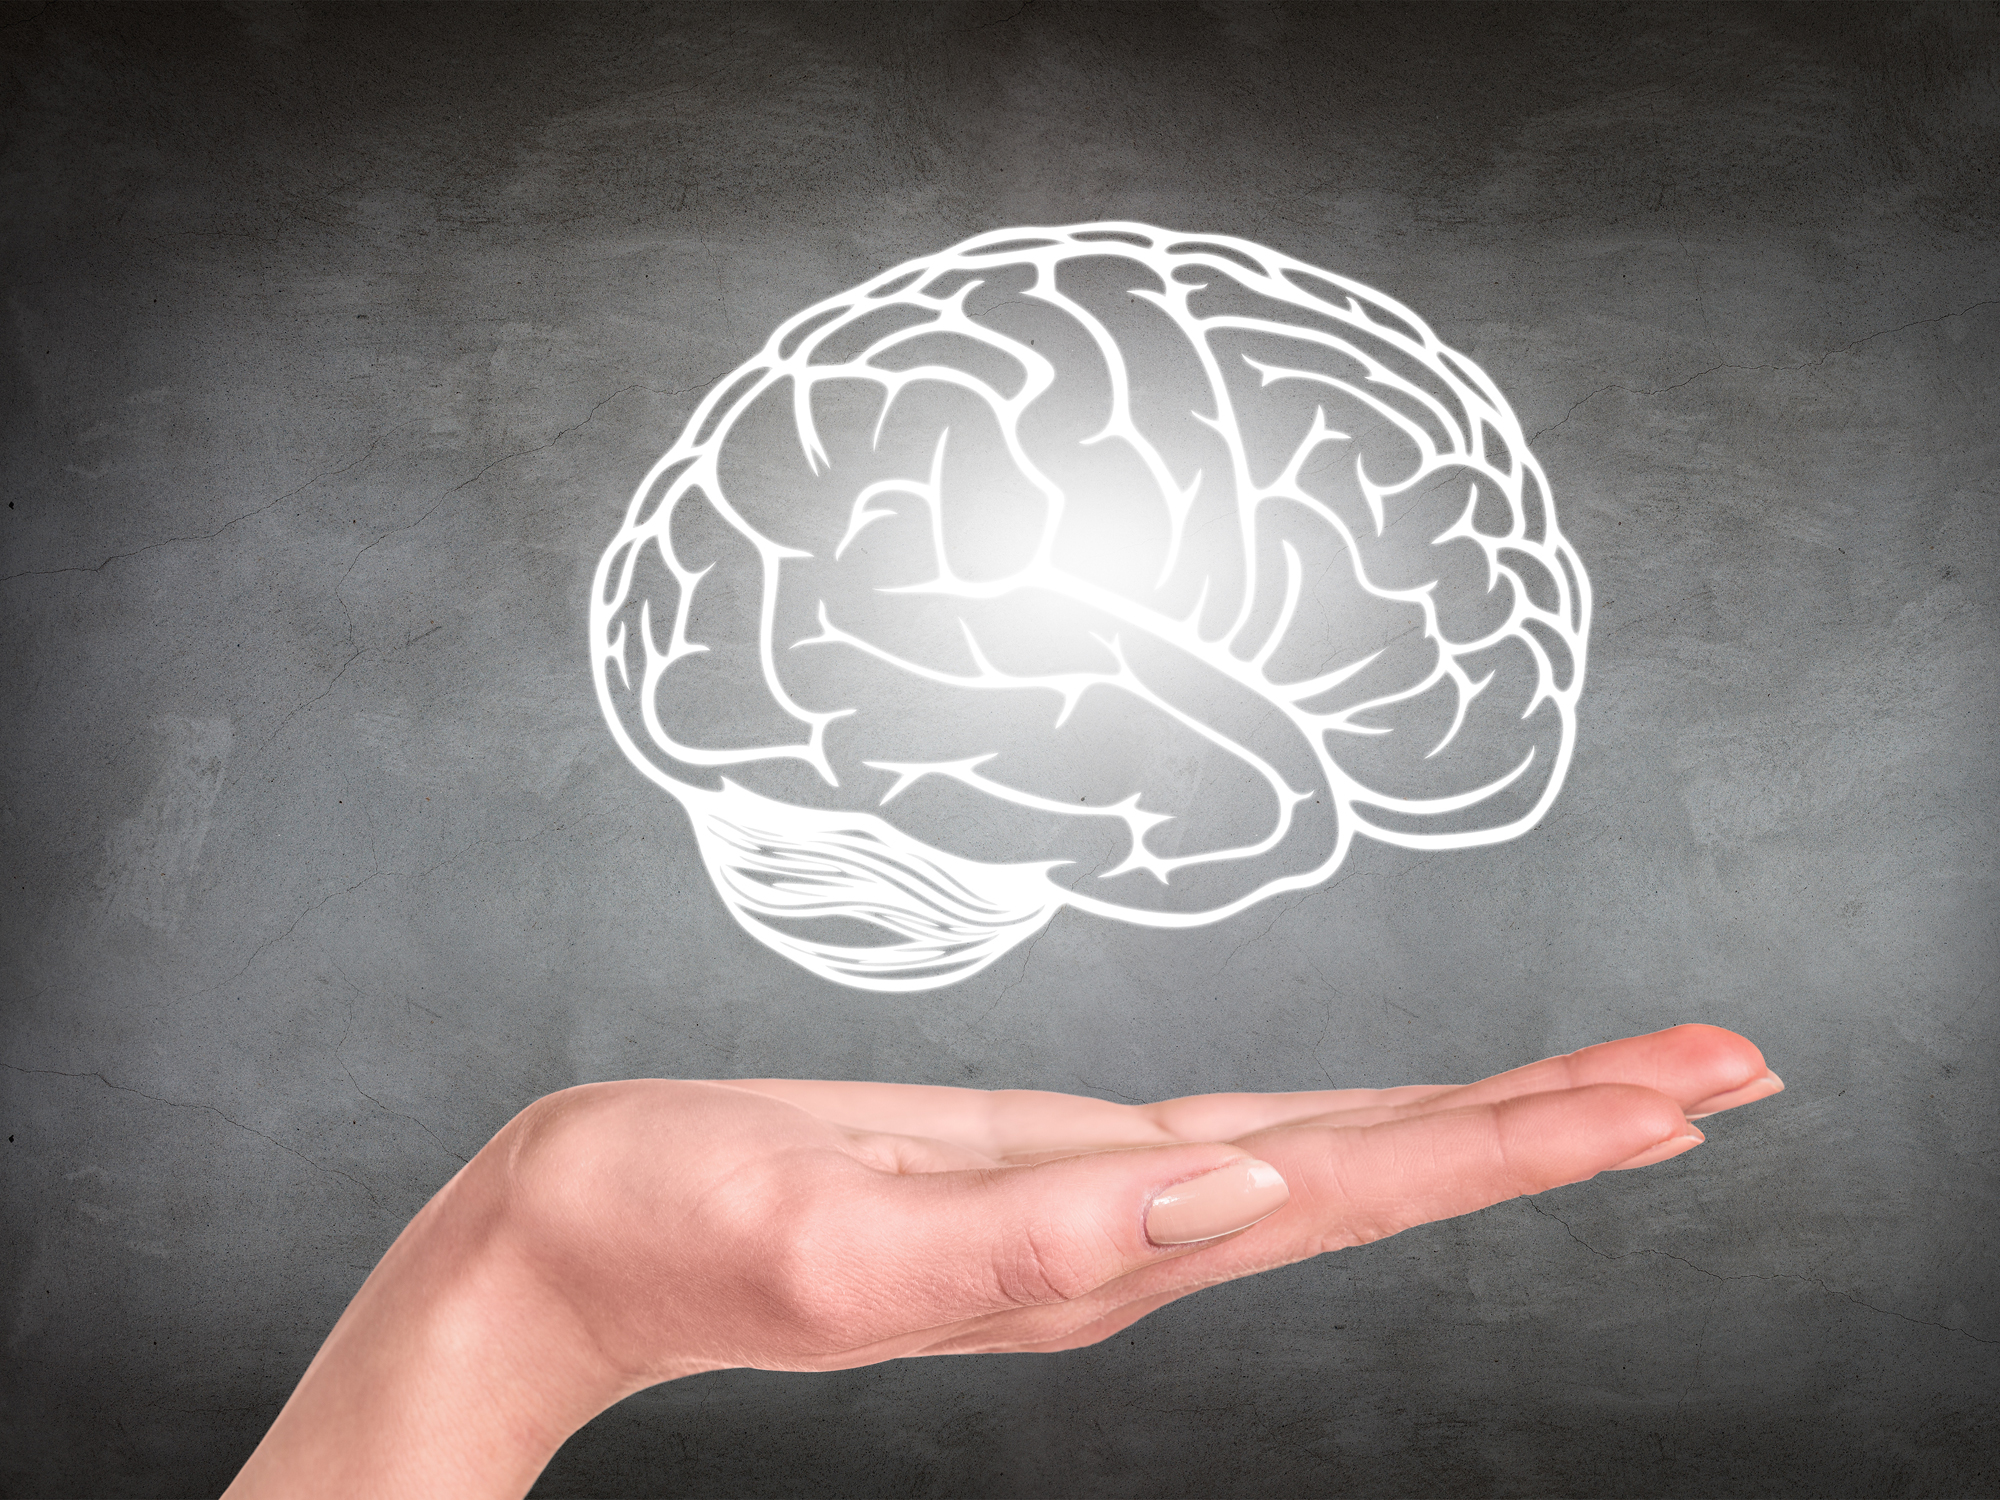 The surest way to a nimble brain